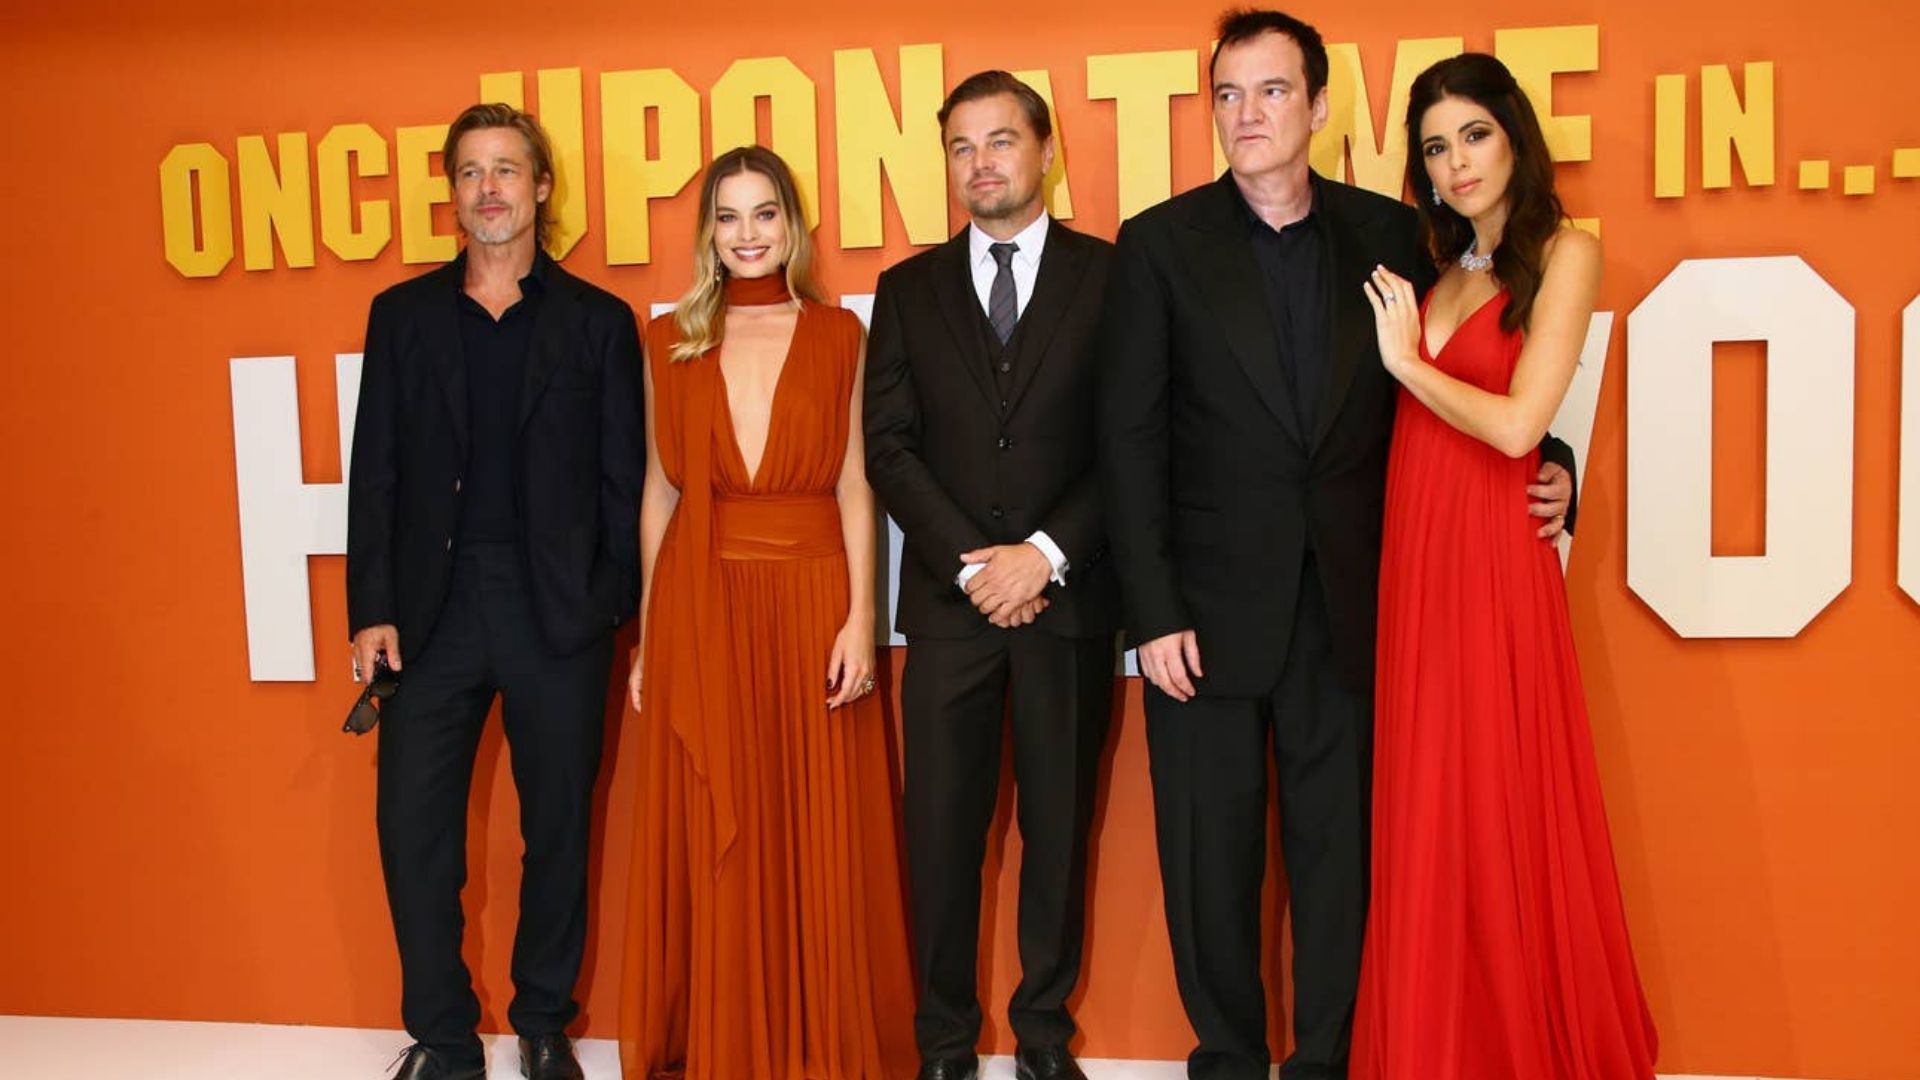 Daniella tarantino pick in lee grebenau at the once upon a time in hollywood london premiere